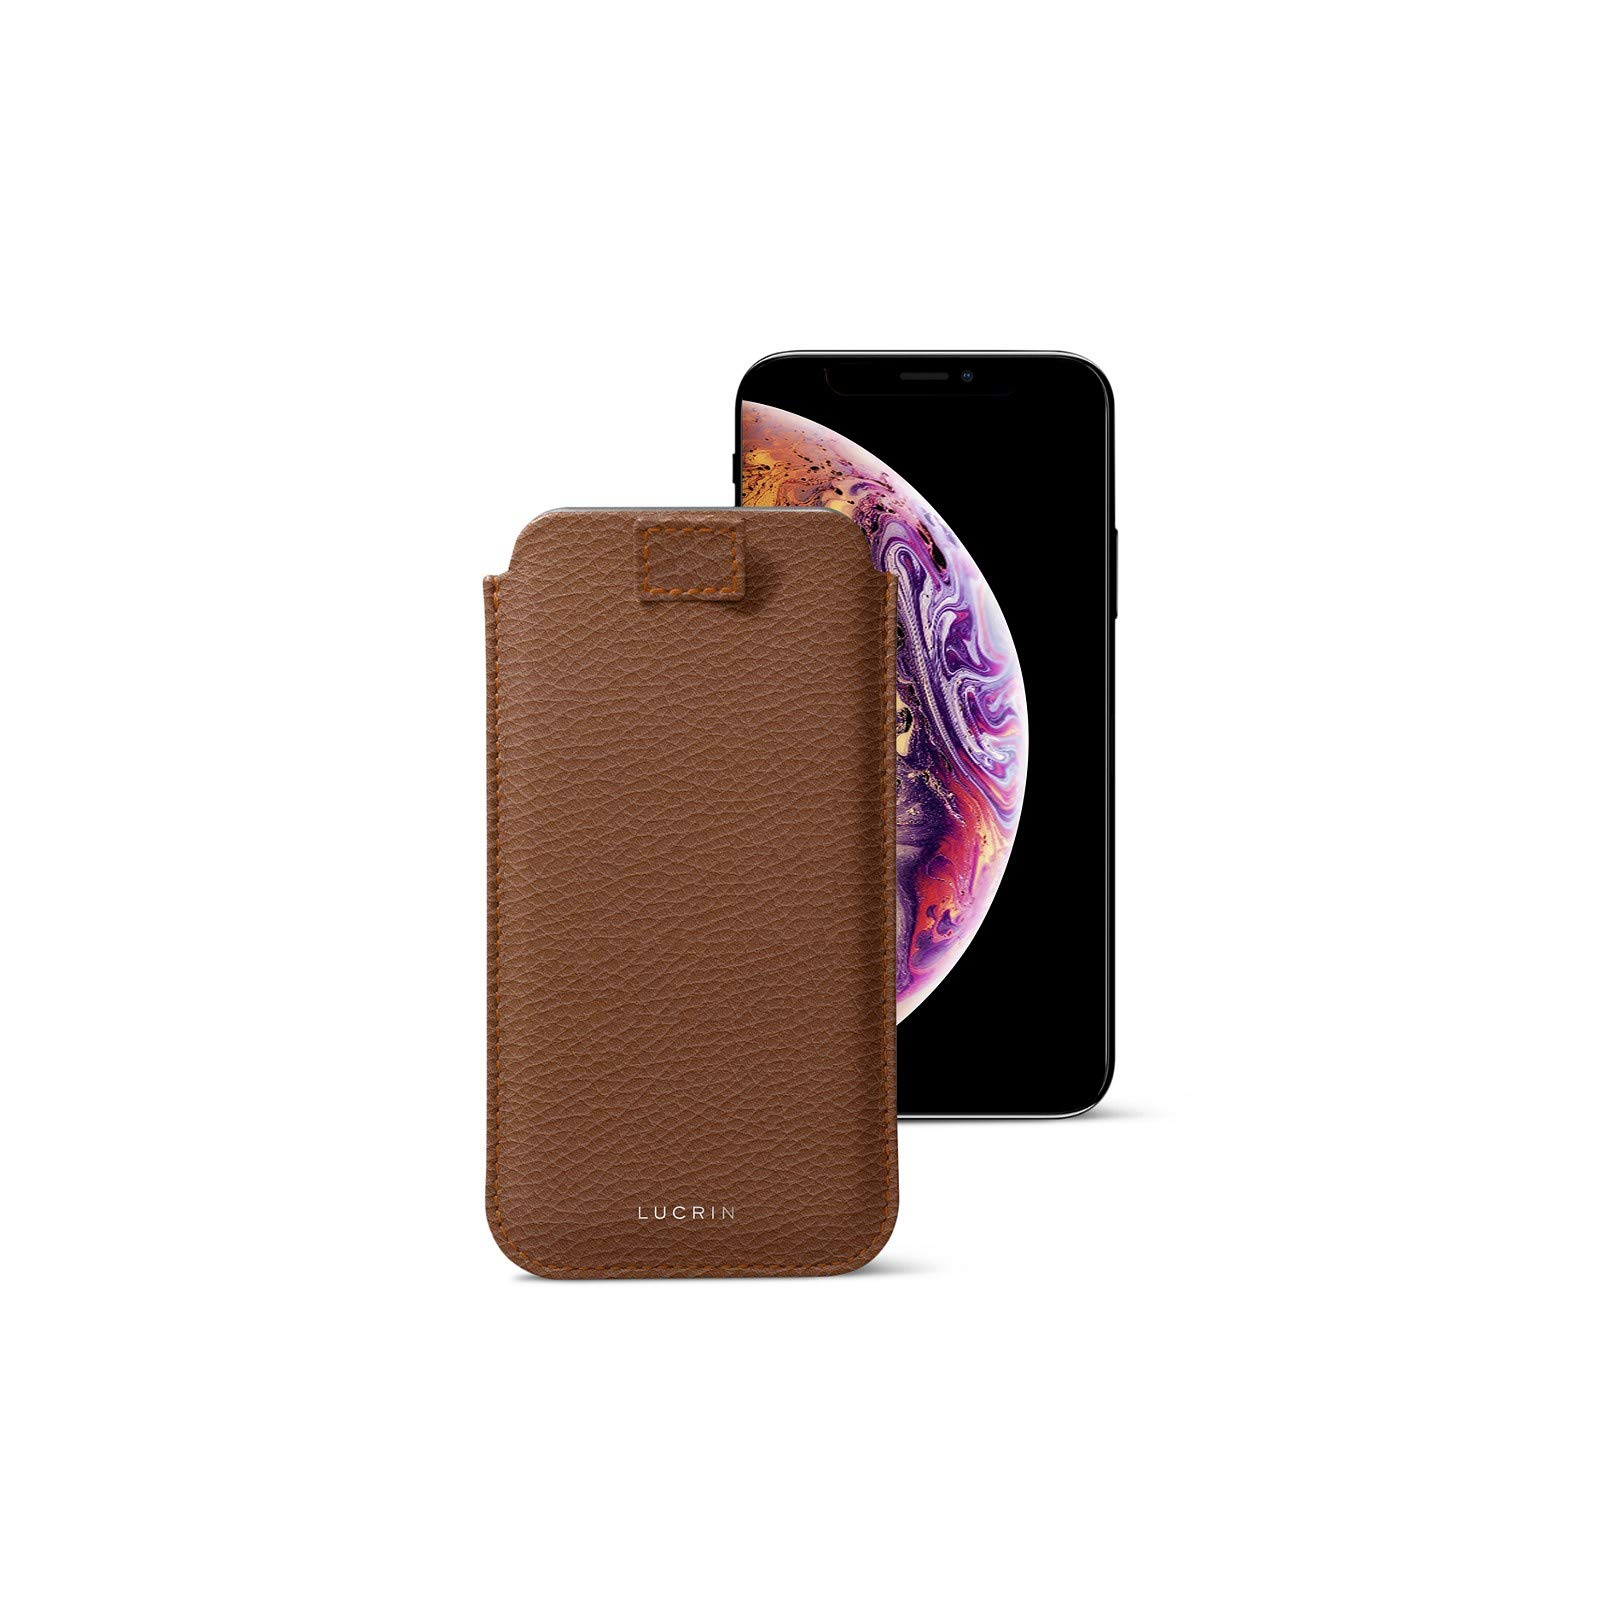 Lucrin - Pull Tab Slim Sleeve Case Compatible with iPhone XS/iPhone X and Wireless Charging - Tan - Granulated Leather